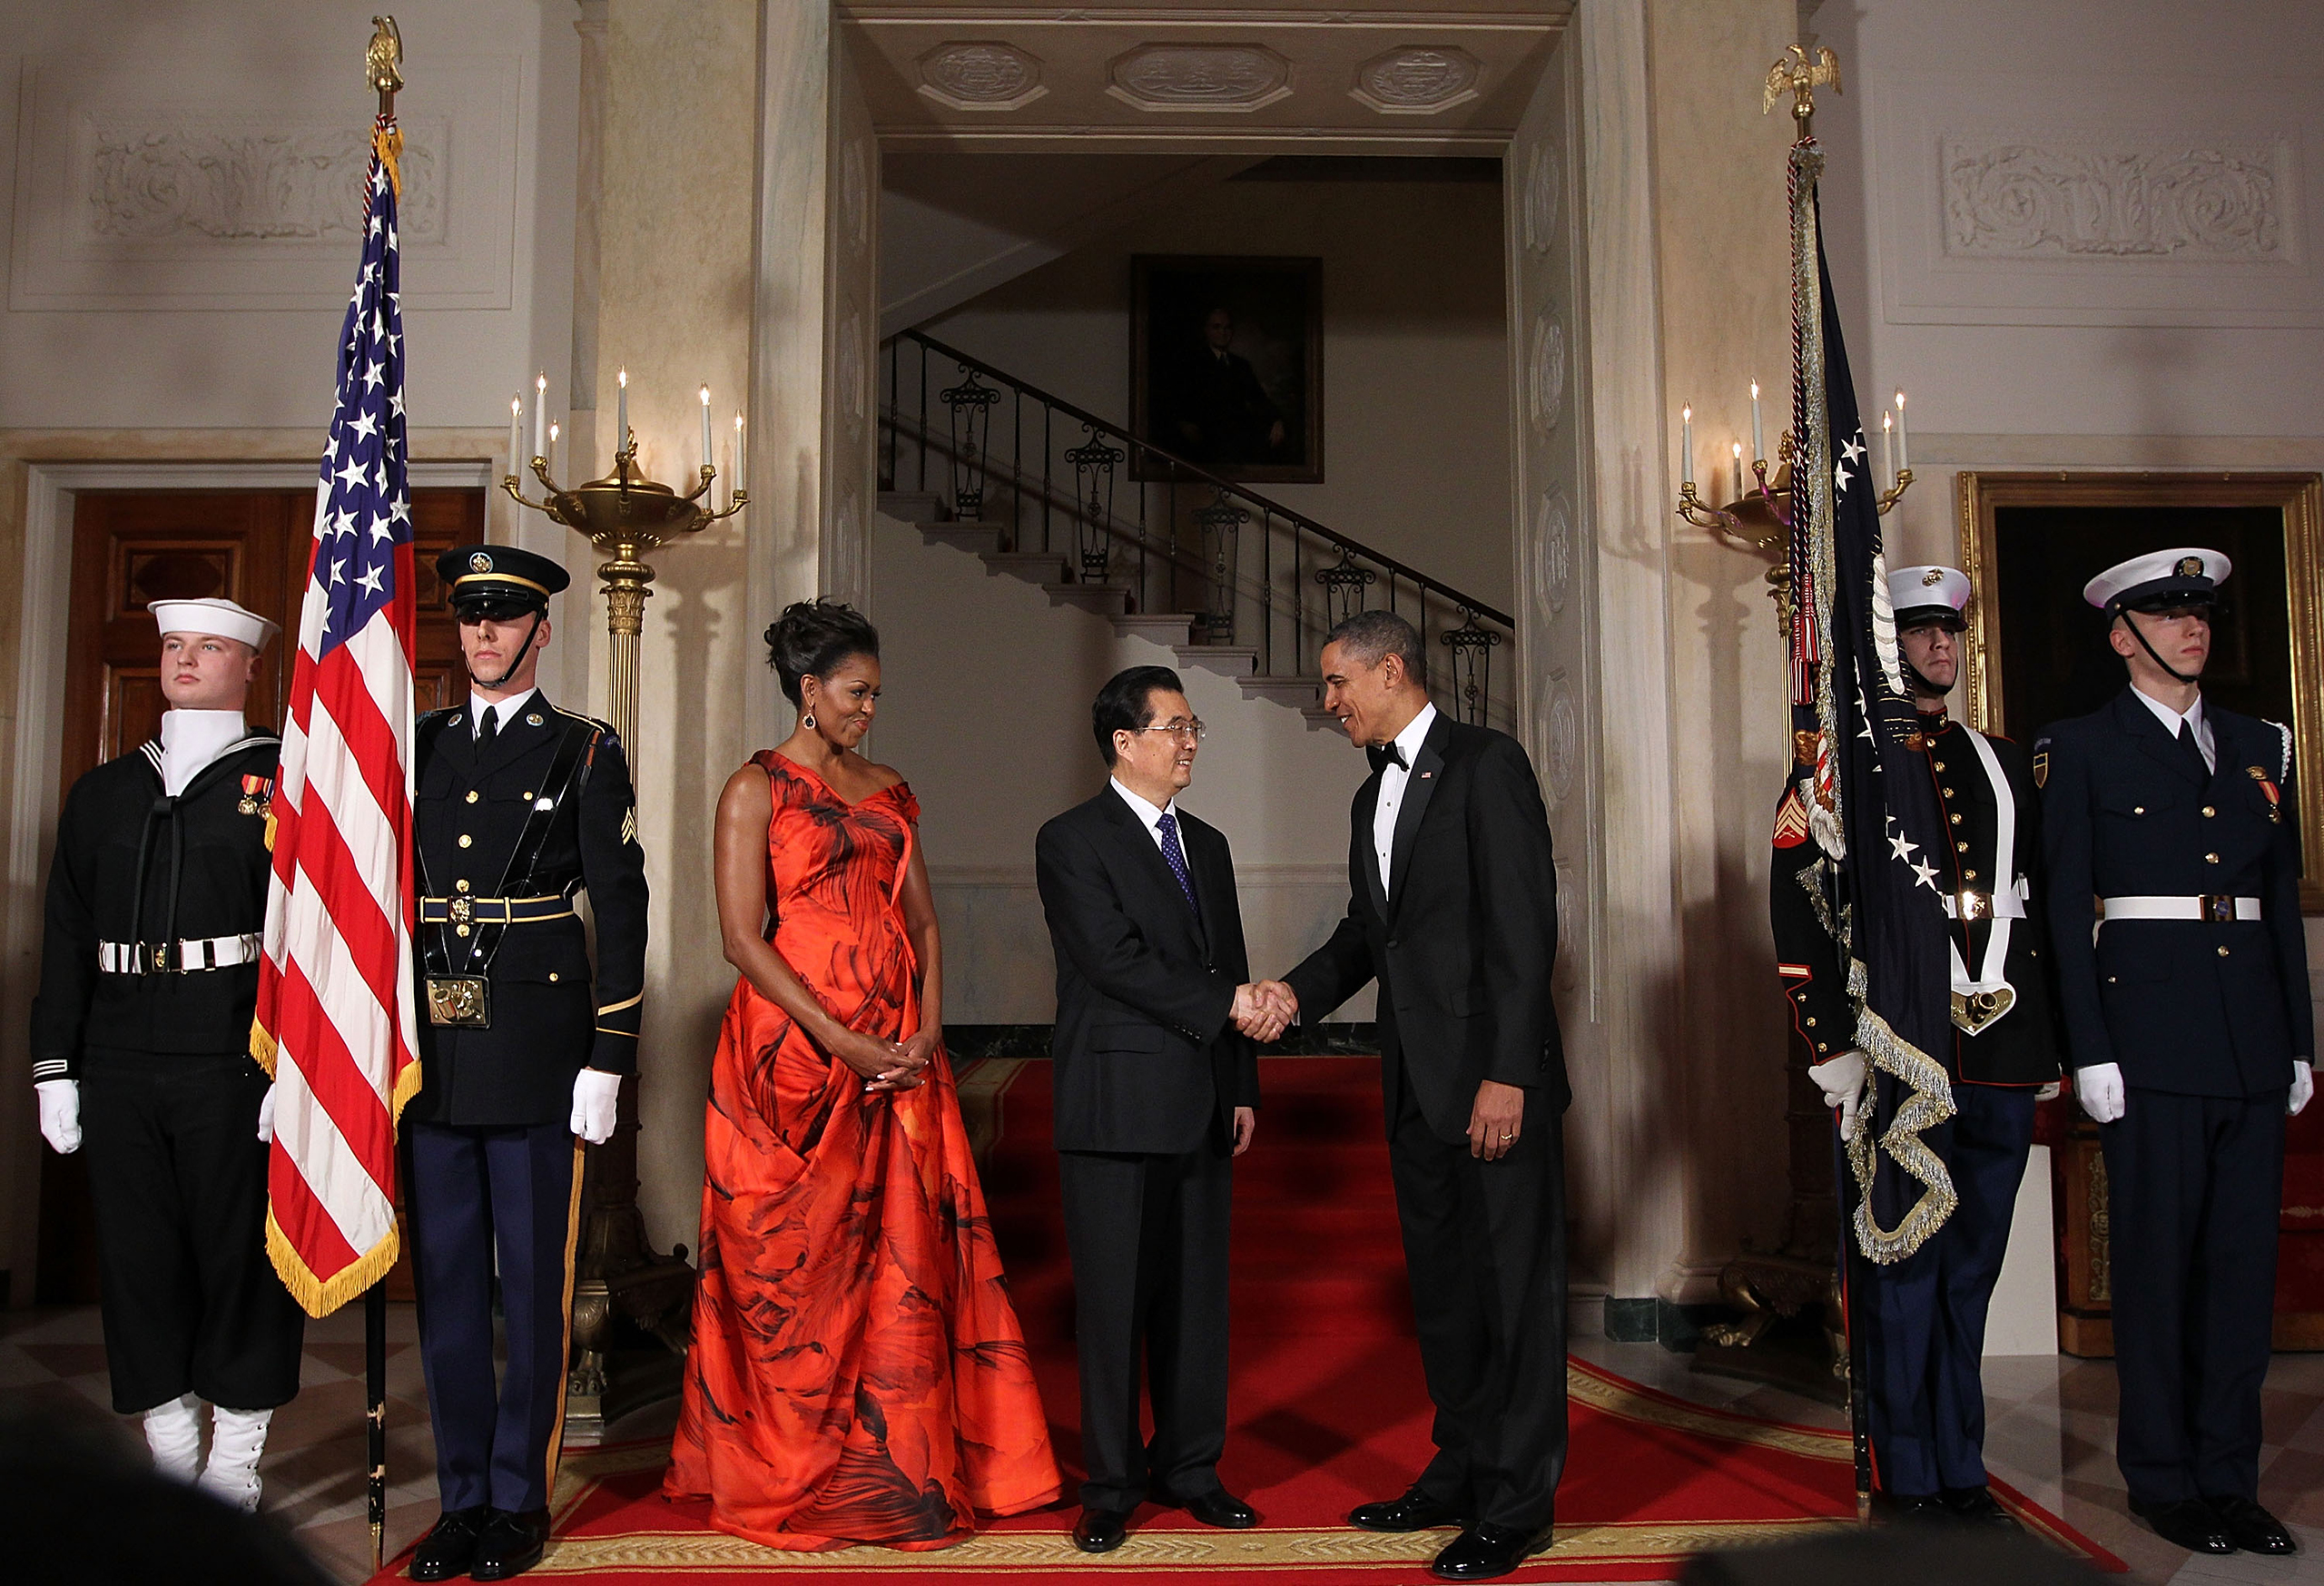 Barack Obama (R) shakes hands with Chinese President Hu Jintao (C) as Michelle Obama looks on as they pose for the official photo at the Grand Staircase of the White House in Washington, D.C., on Jan.19, 2011.